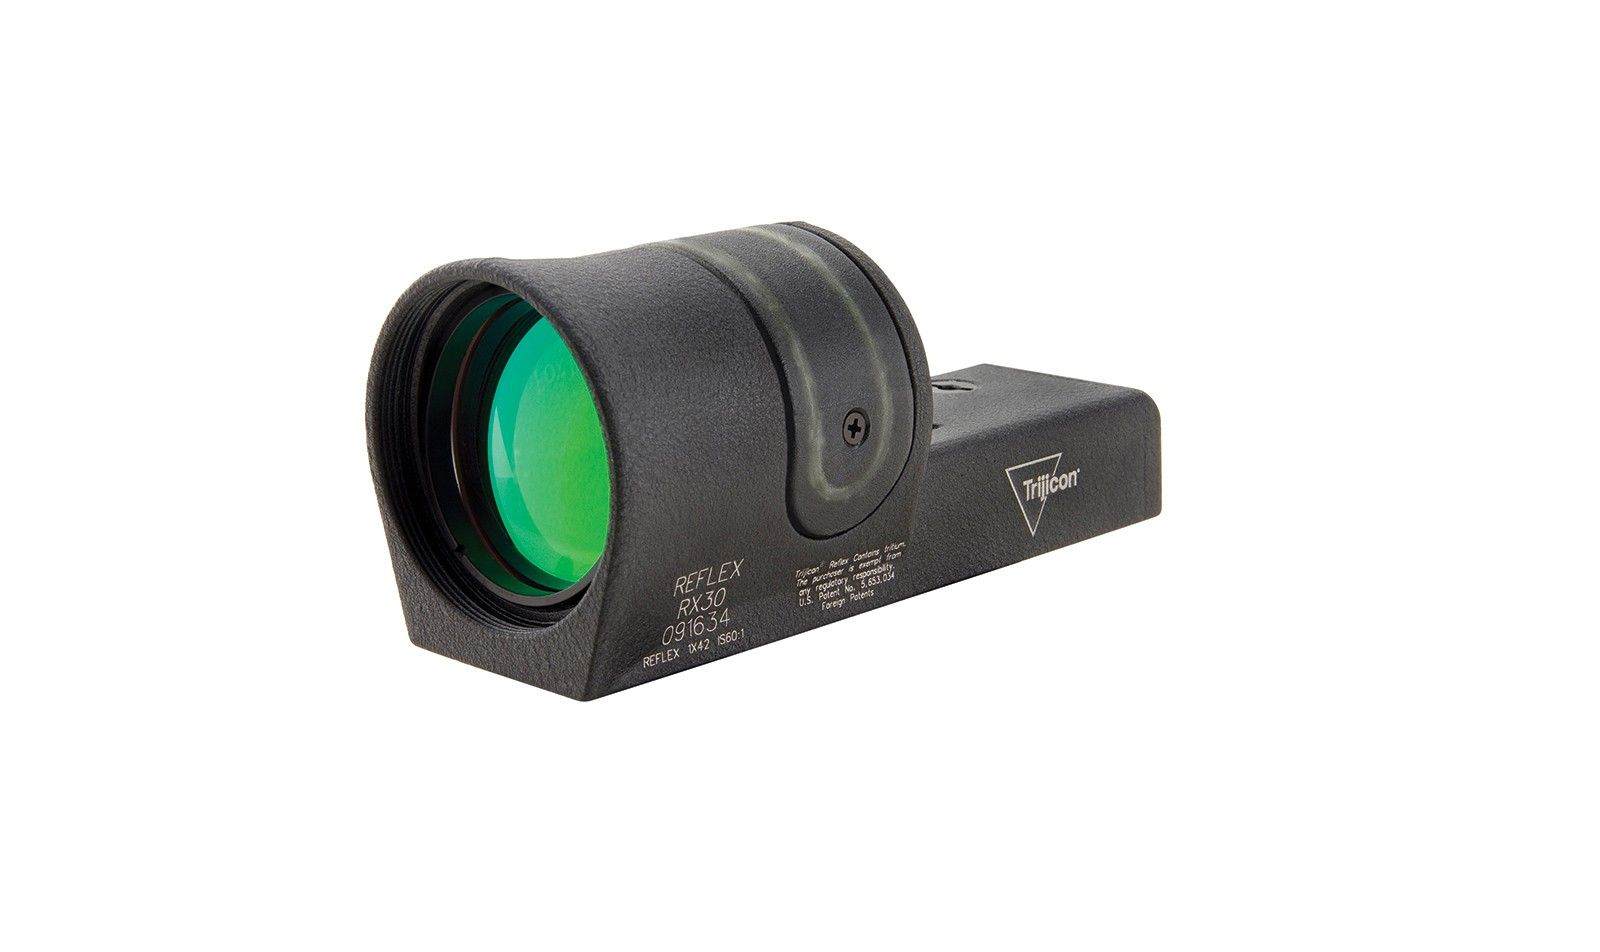 Trijicon® Reflex 1x42 Dual Illuminated Sight